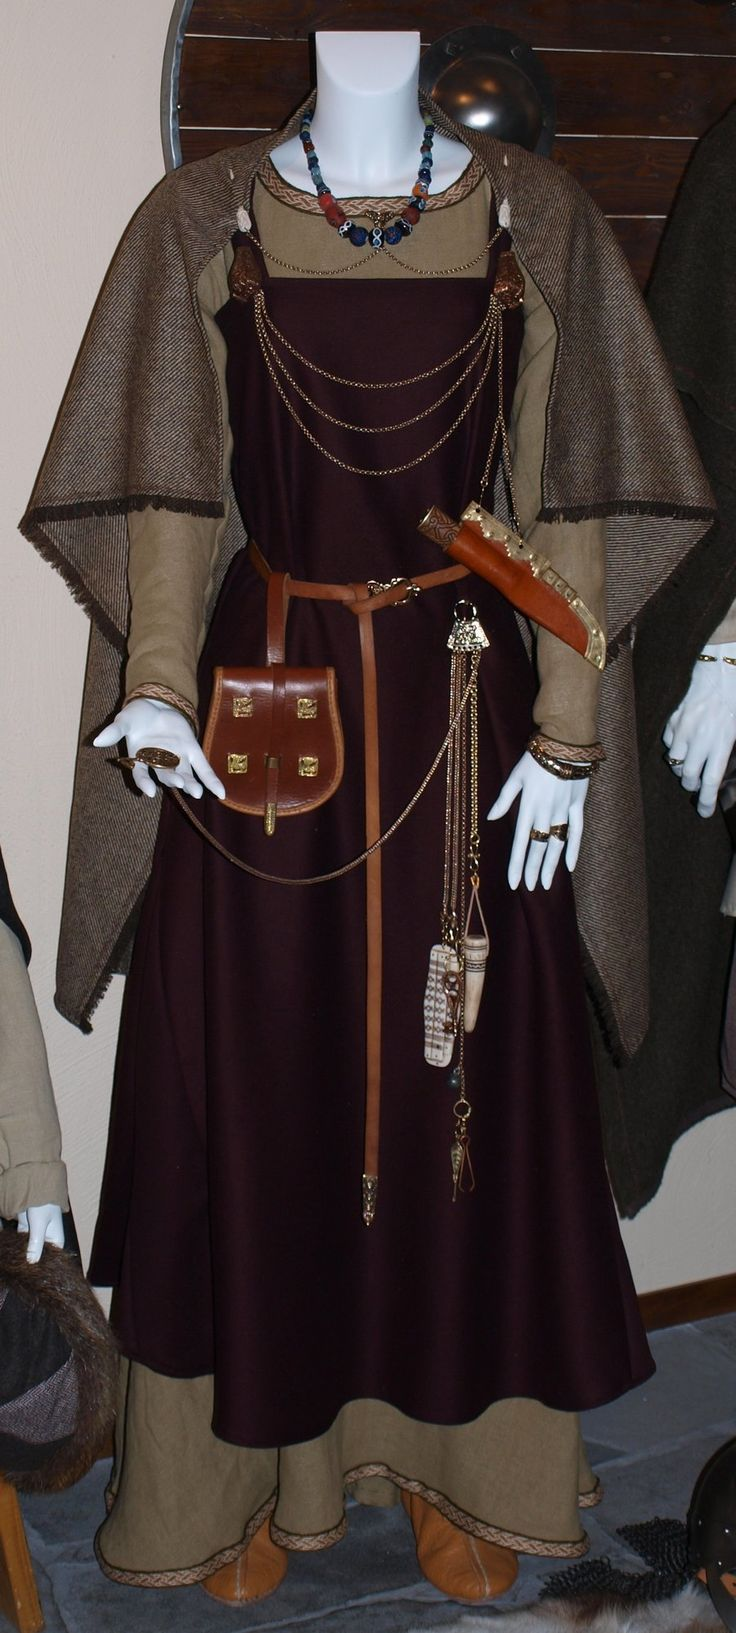 ~DarkSunTattoo - missed the Hoggtowne Medieval Faire this year  - maybe next year wearing something like this?  Nice Viking outfit.